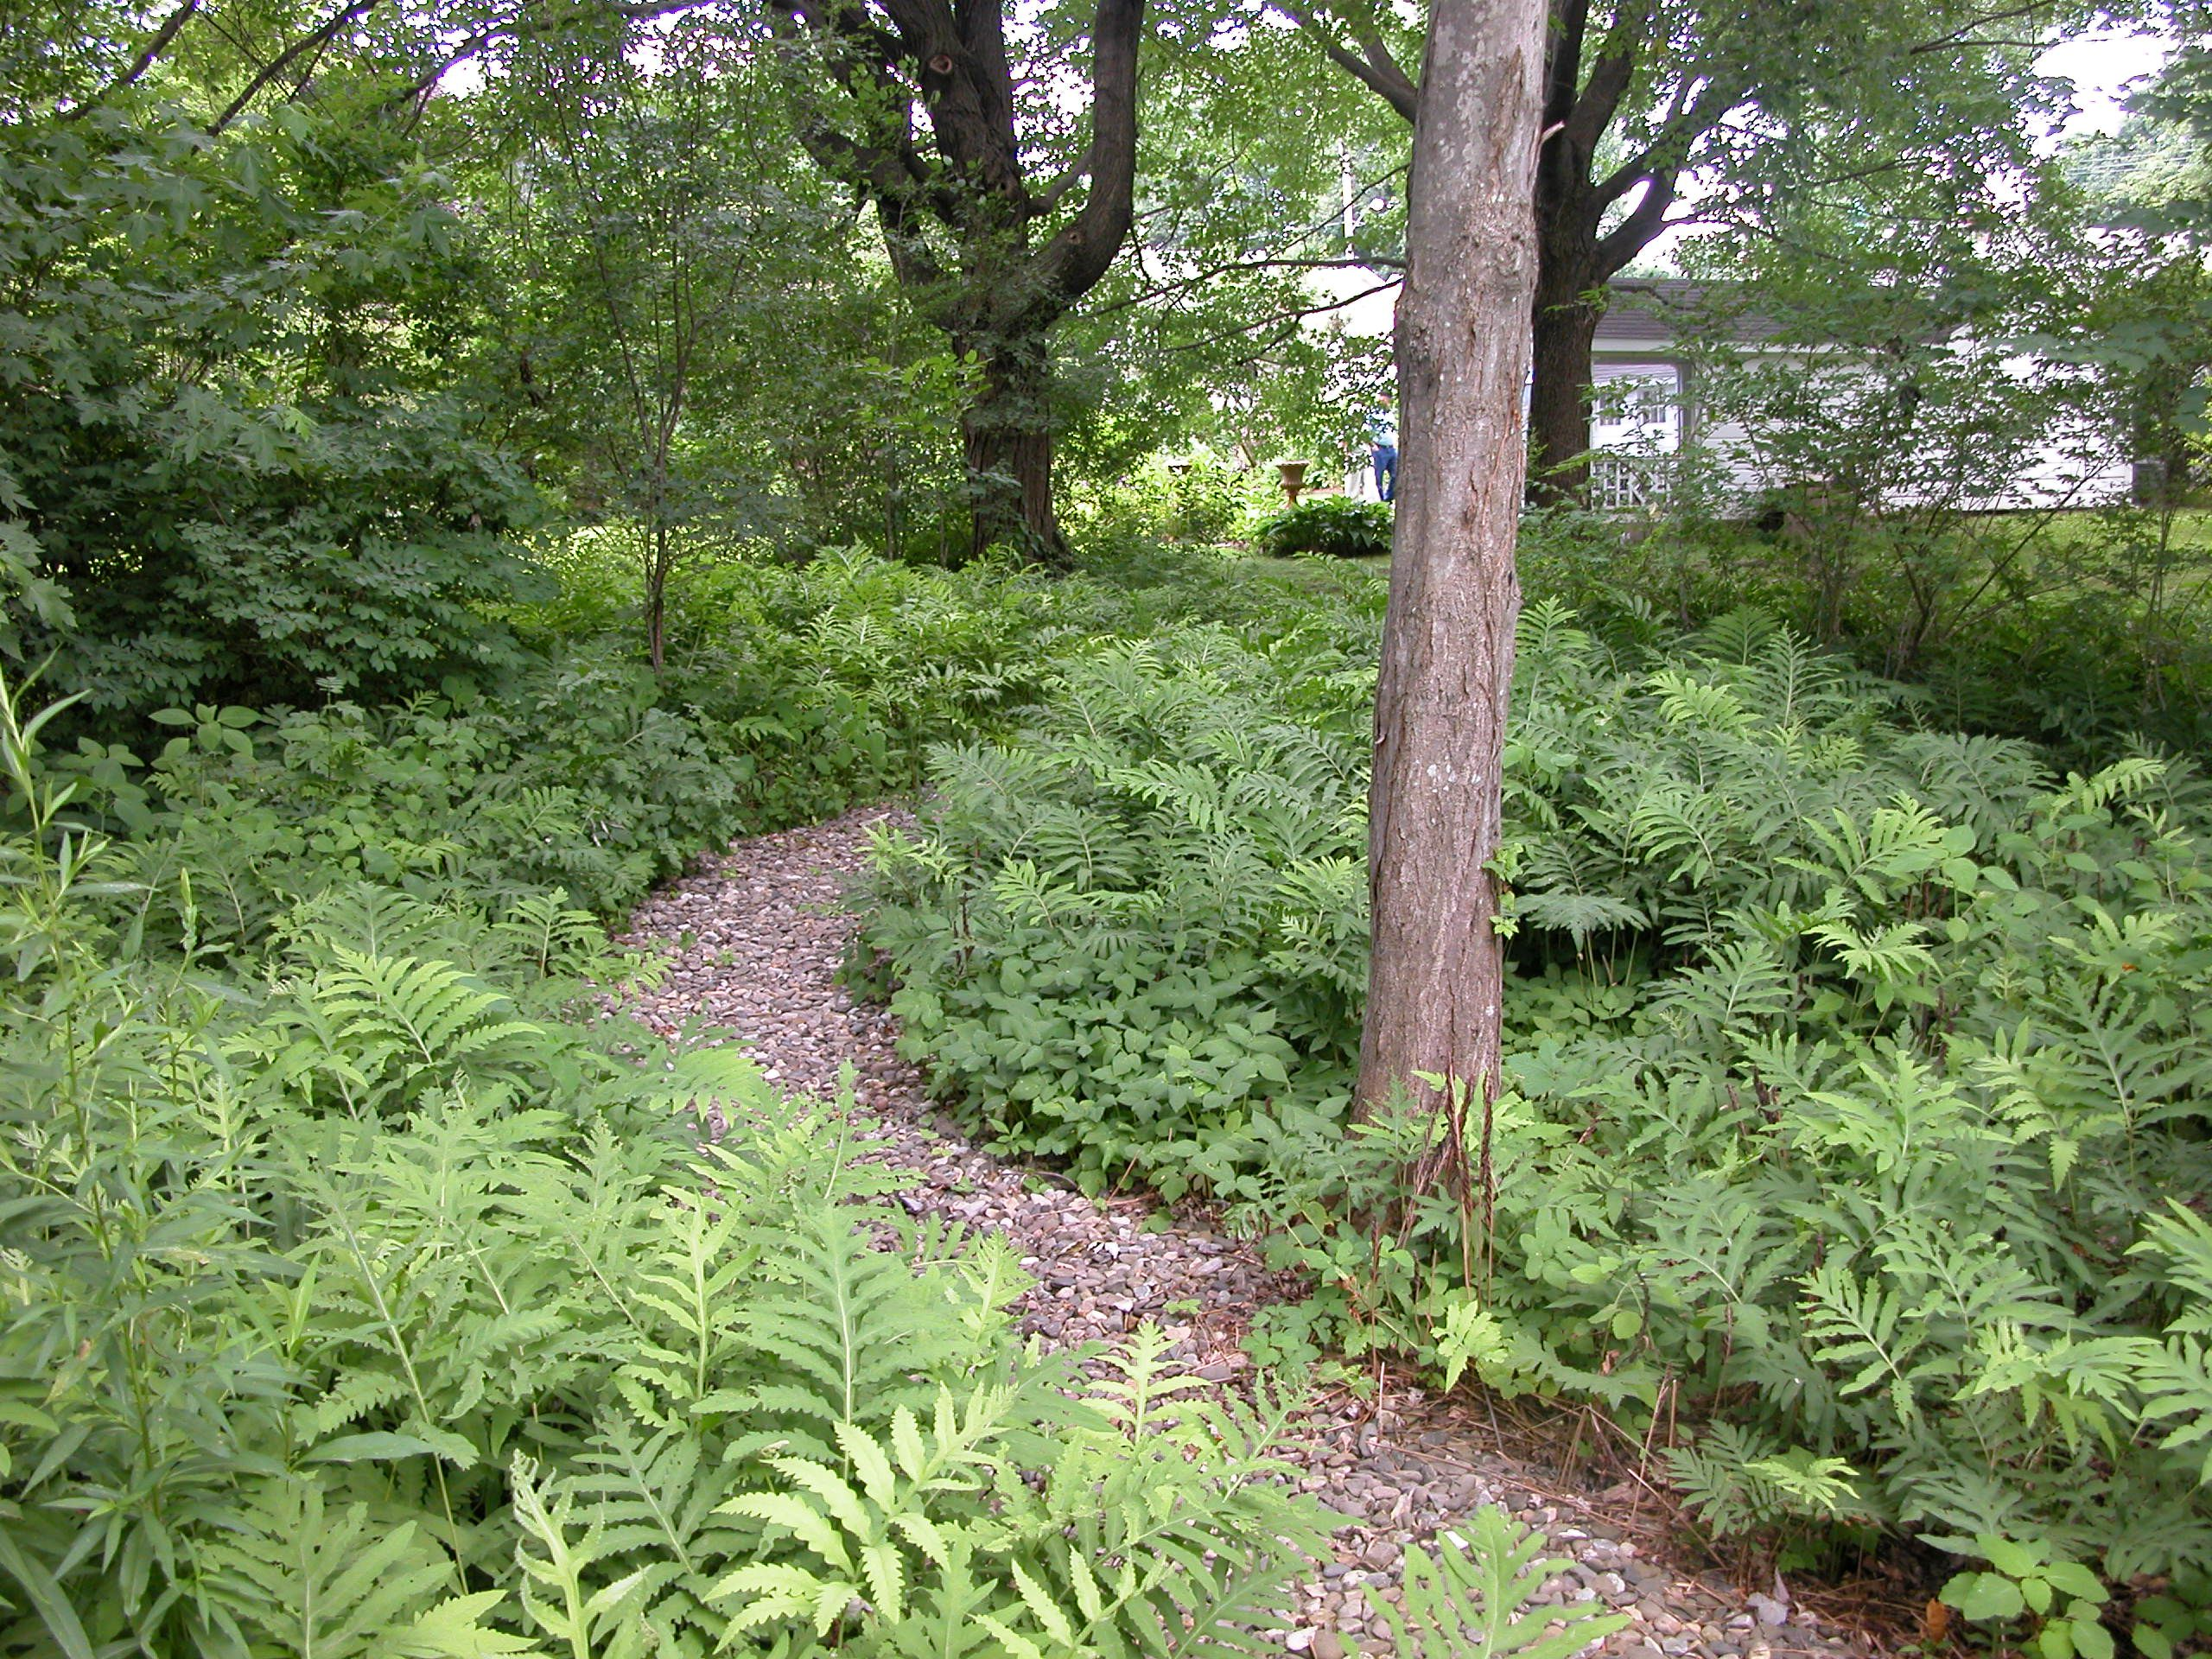 Pebbled path in a woodland garden